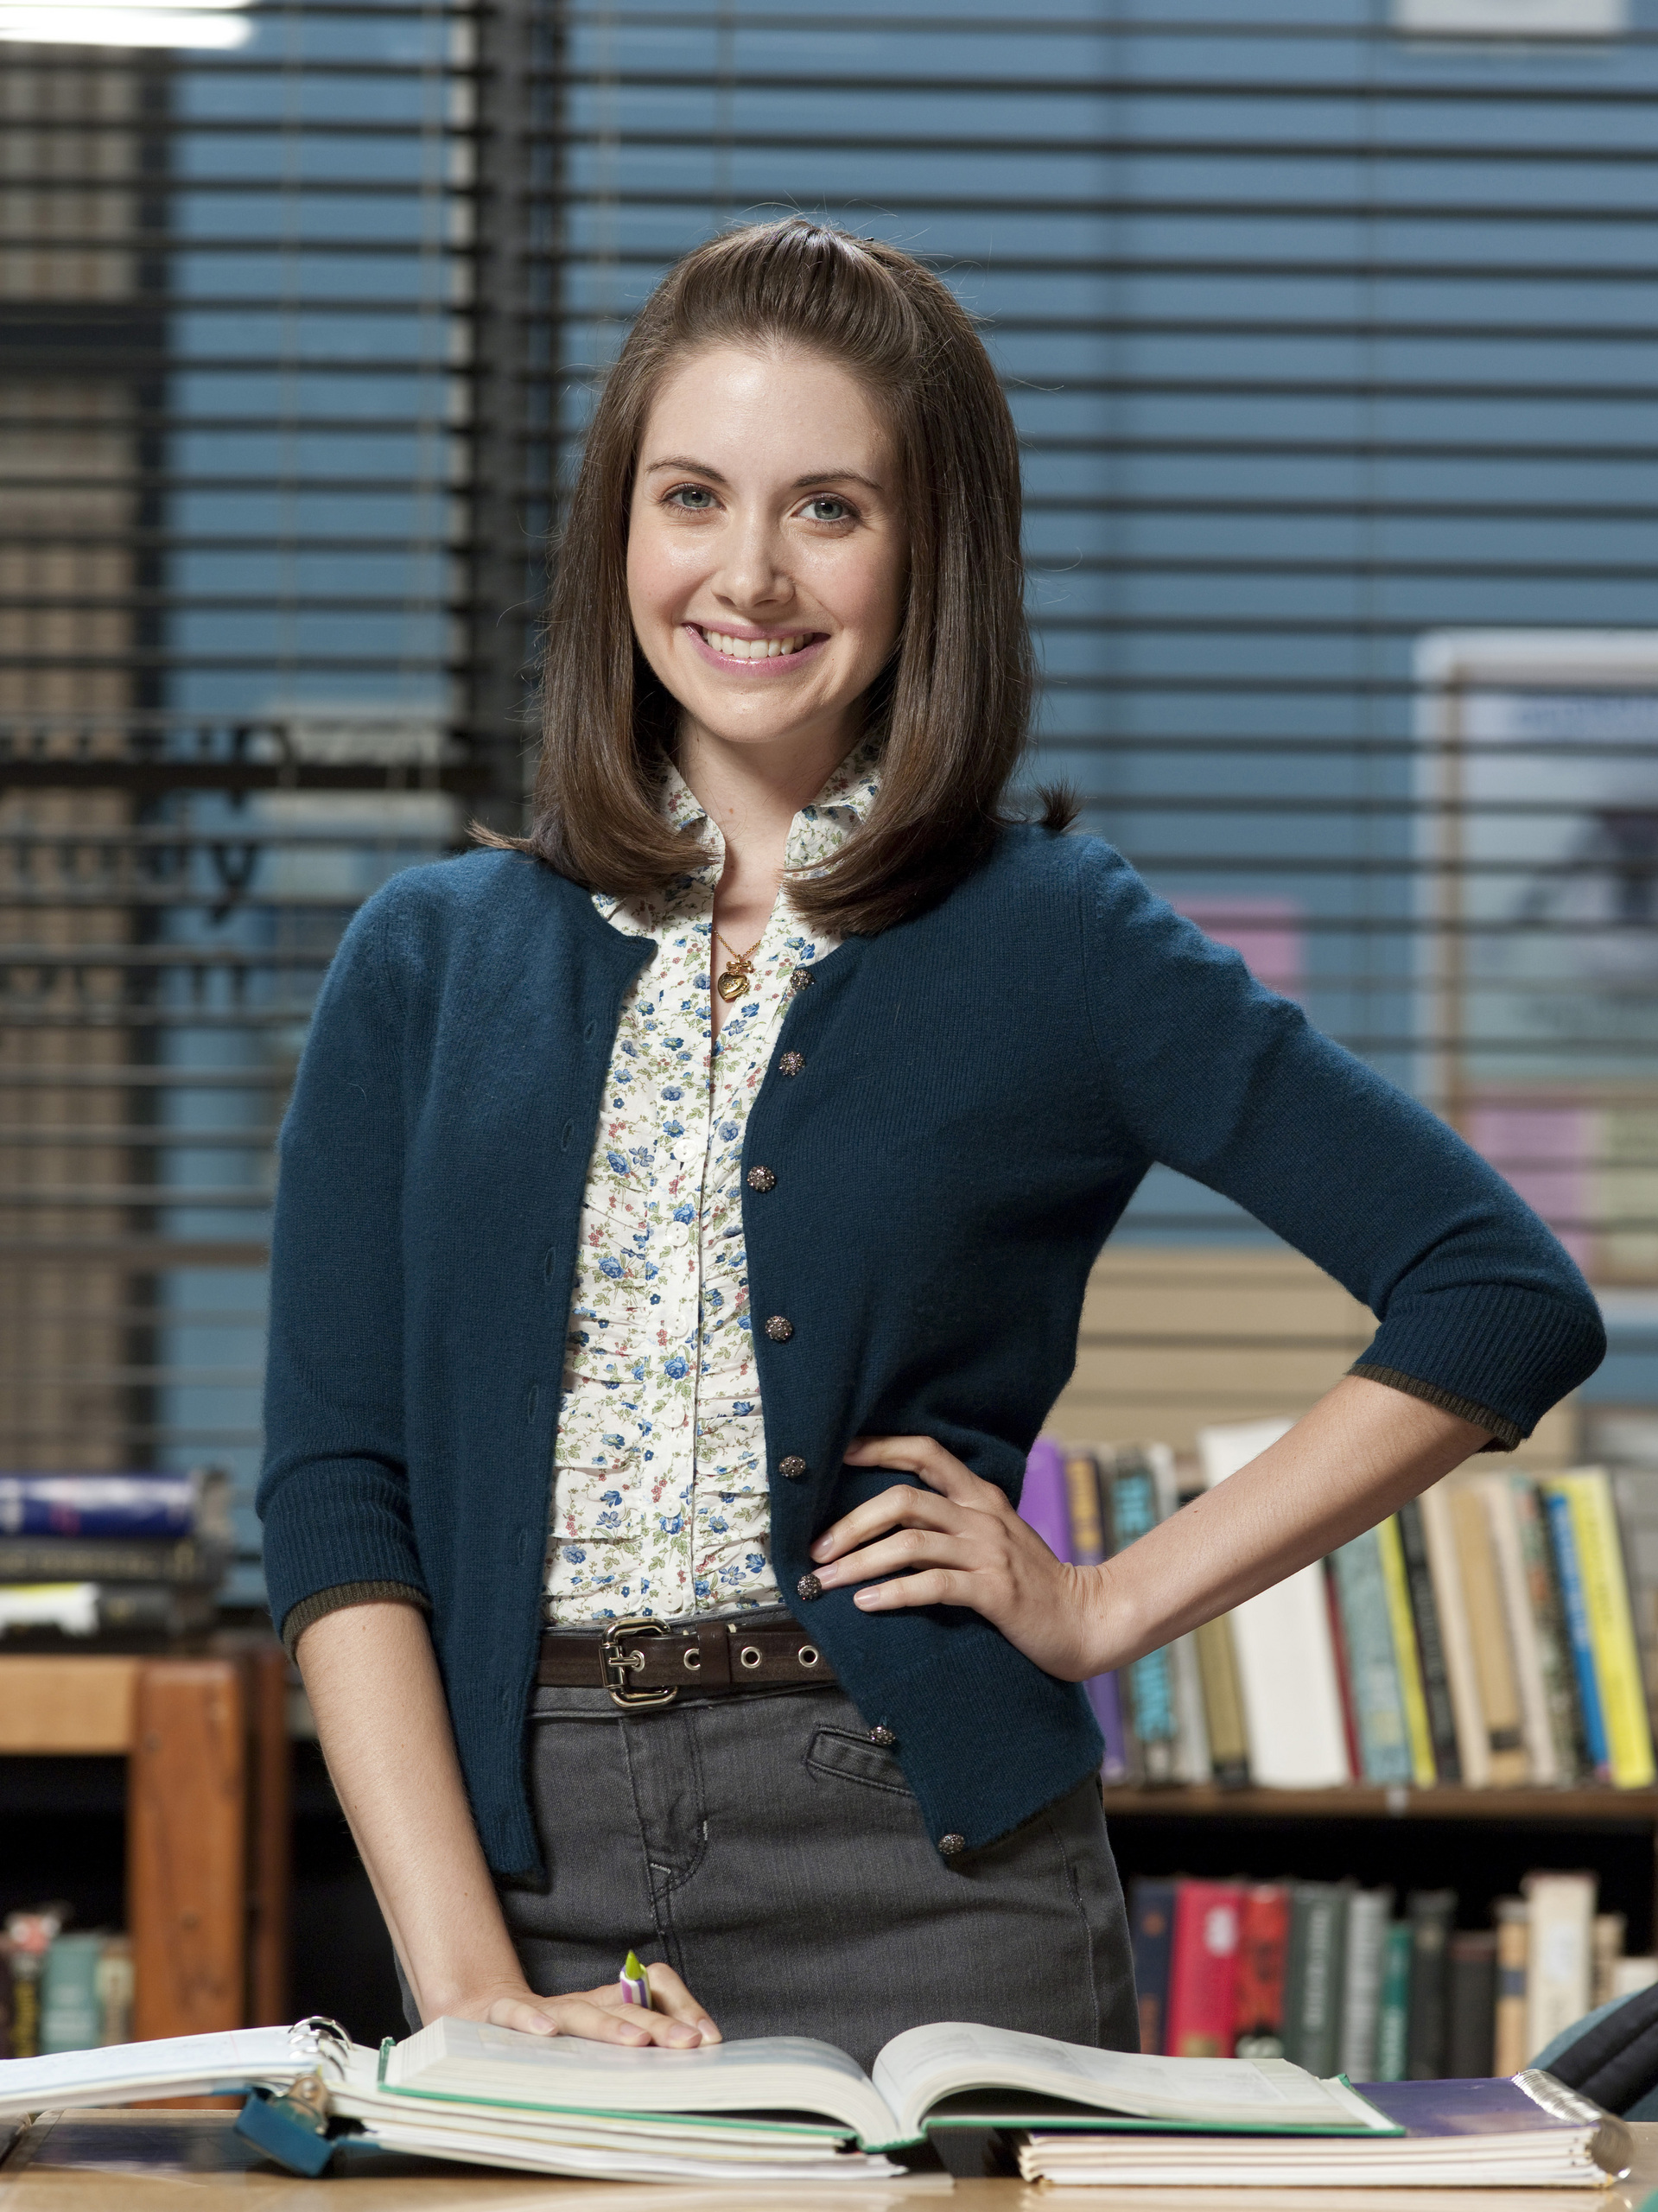 Alison brie community 04 annie039s christmas song 10